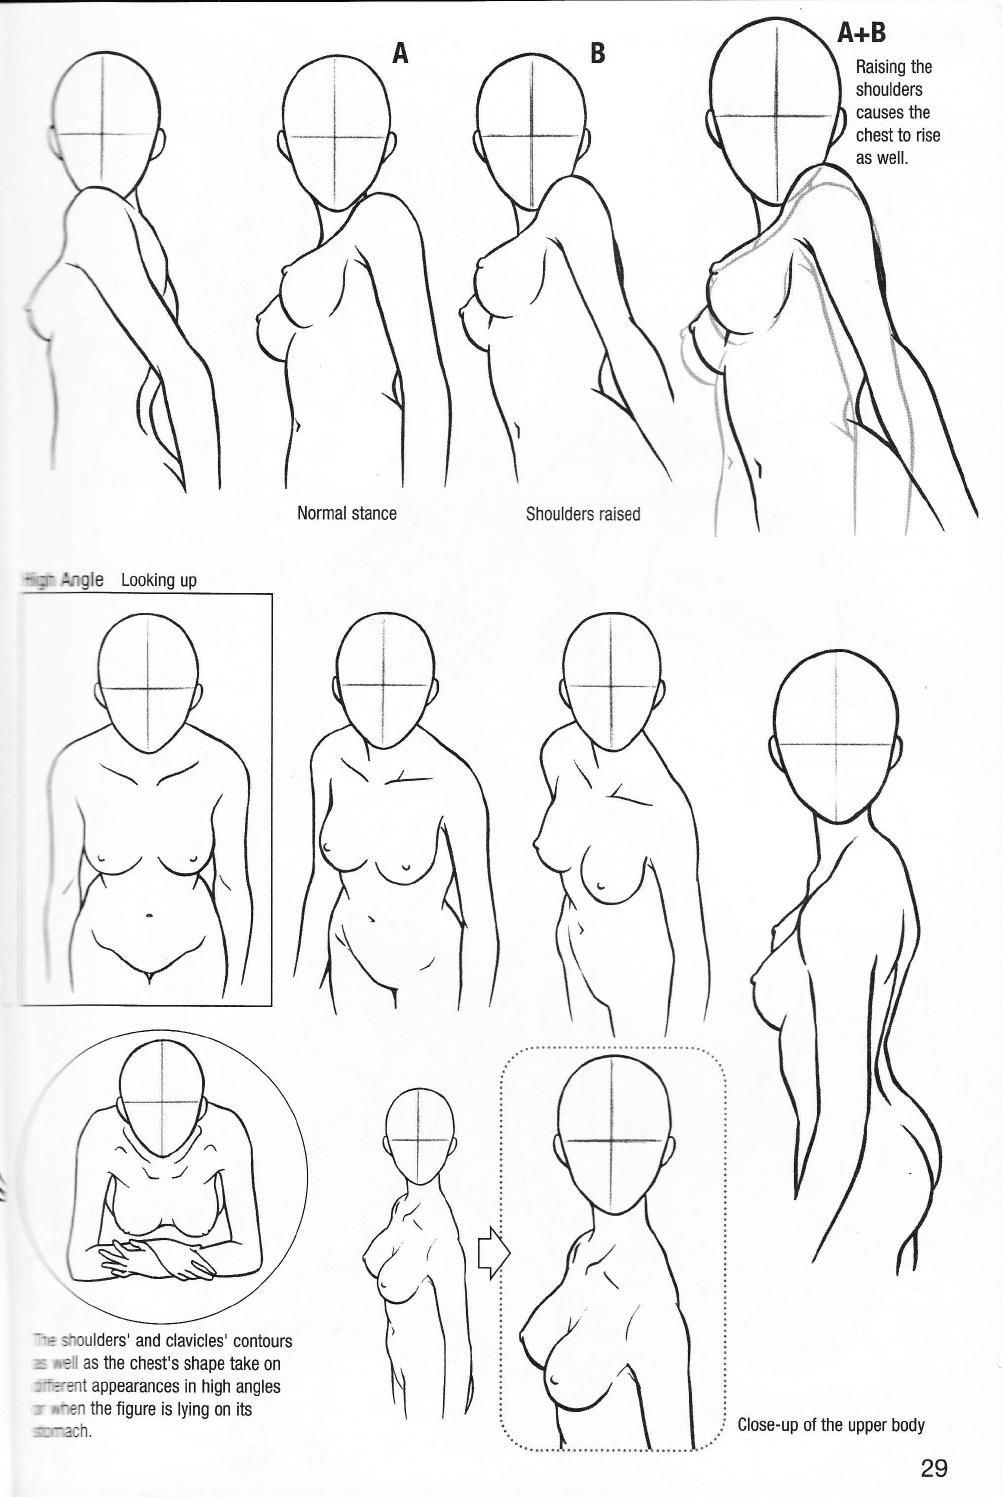 More how to draw manga vol 2 penning characters | Anatomía, Dibujar ...